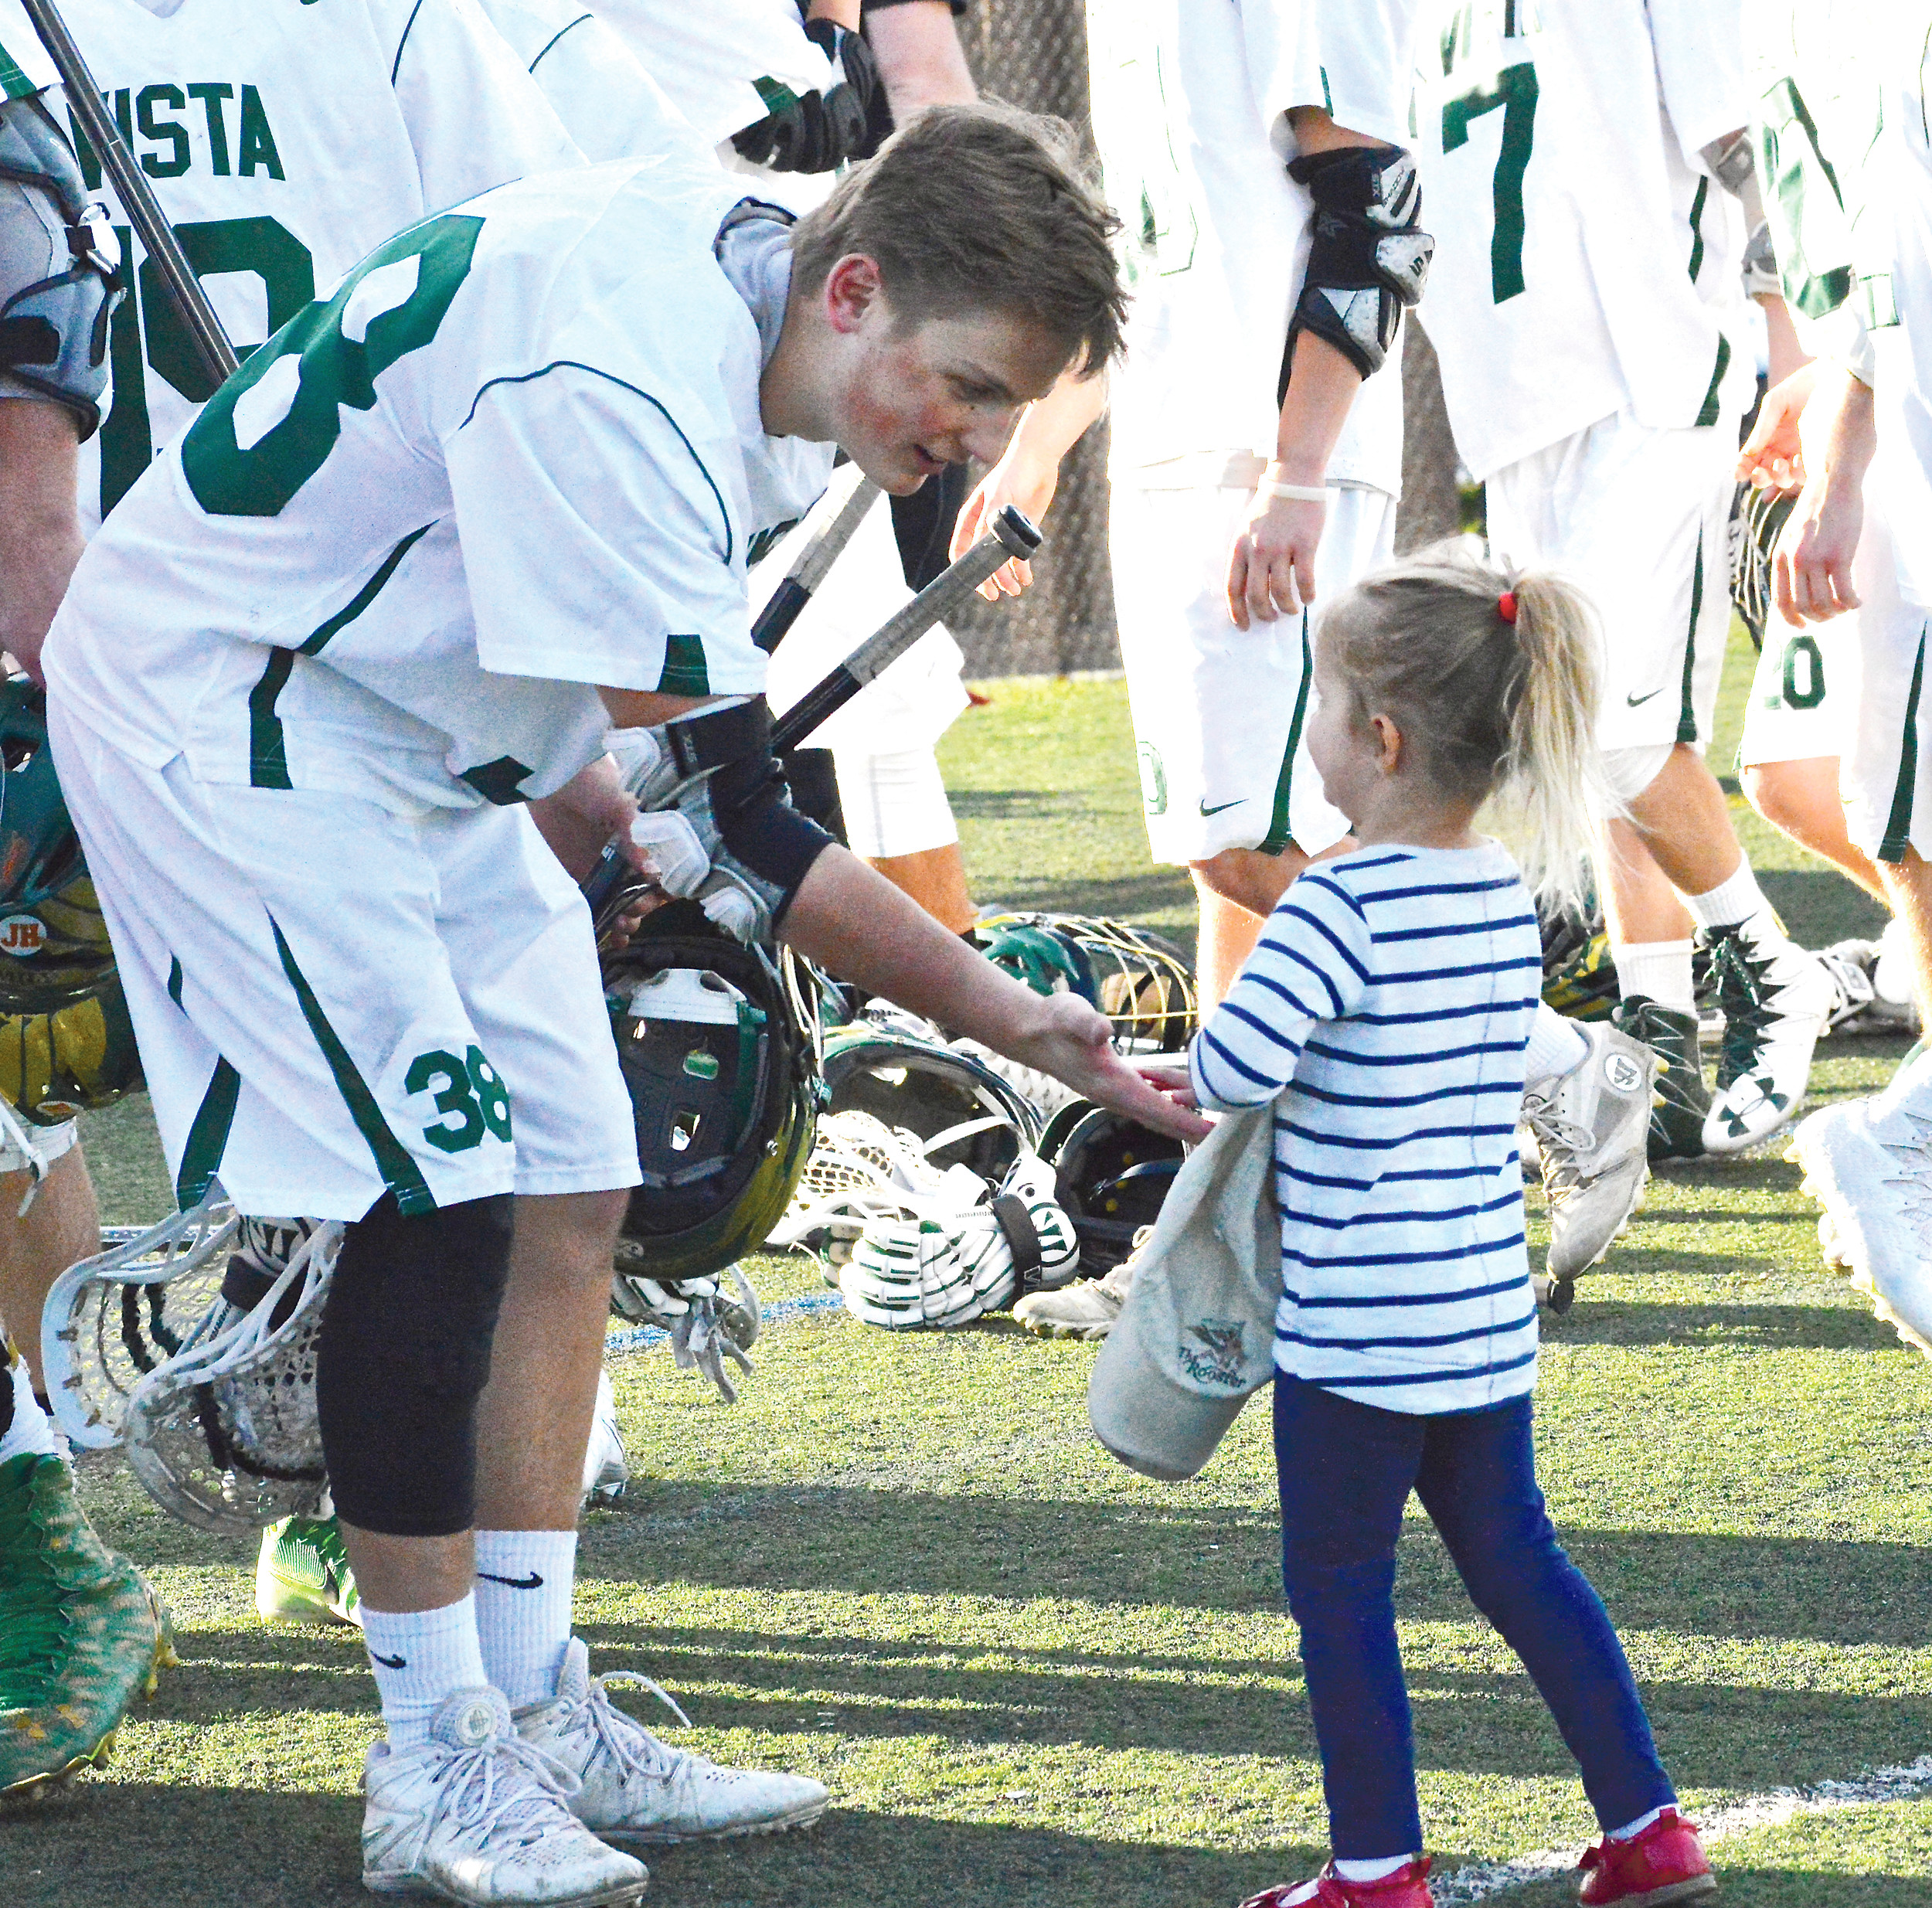 Highlands Ranch Lacrosse: Vista Boys Lacrosse Team All About Family